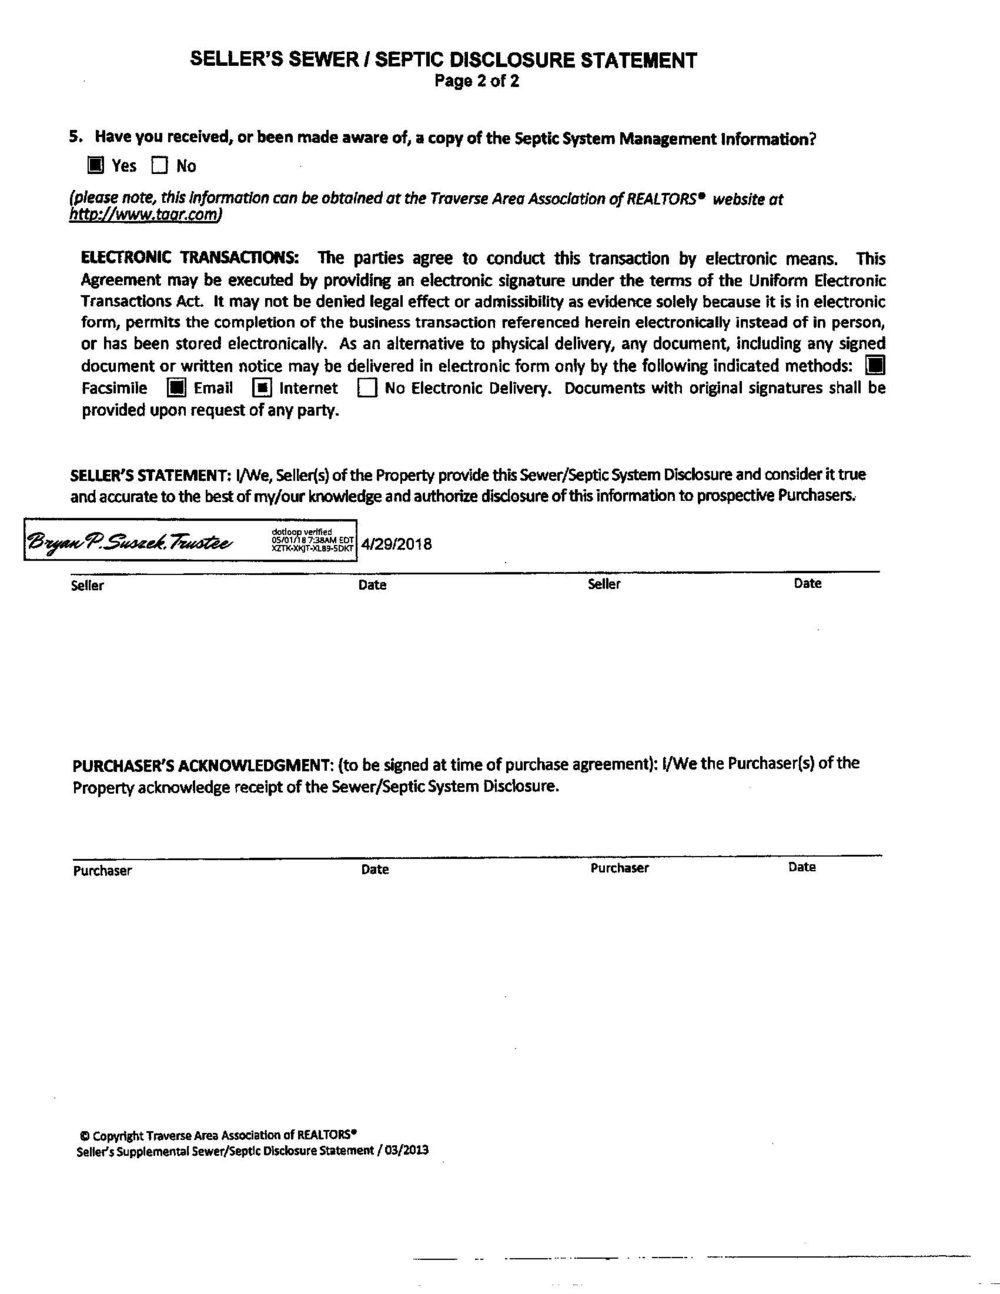 11140 E Lee Mann Road Marketing Packet_Page_14.jpg